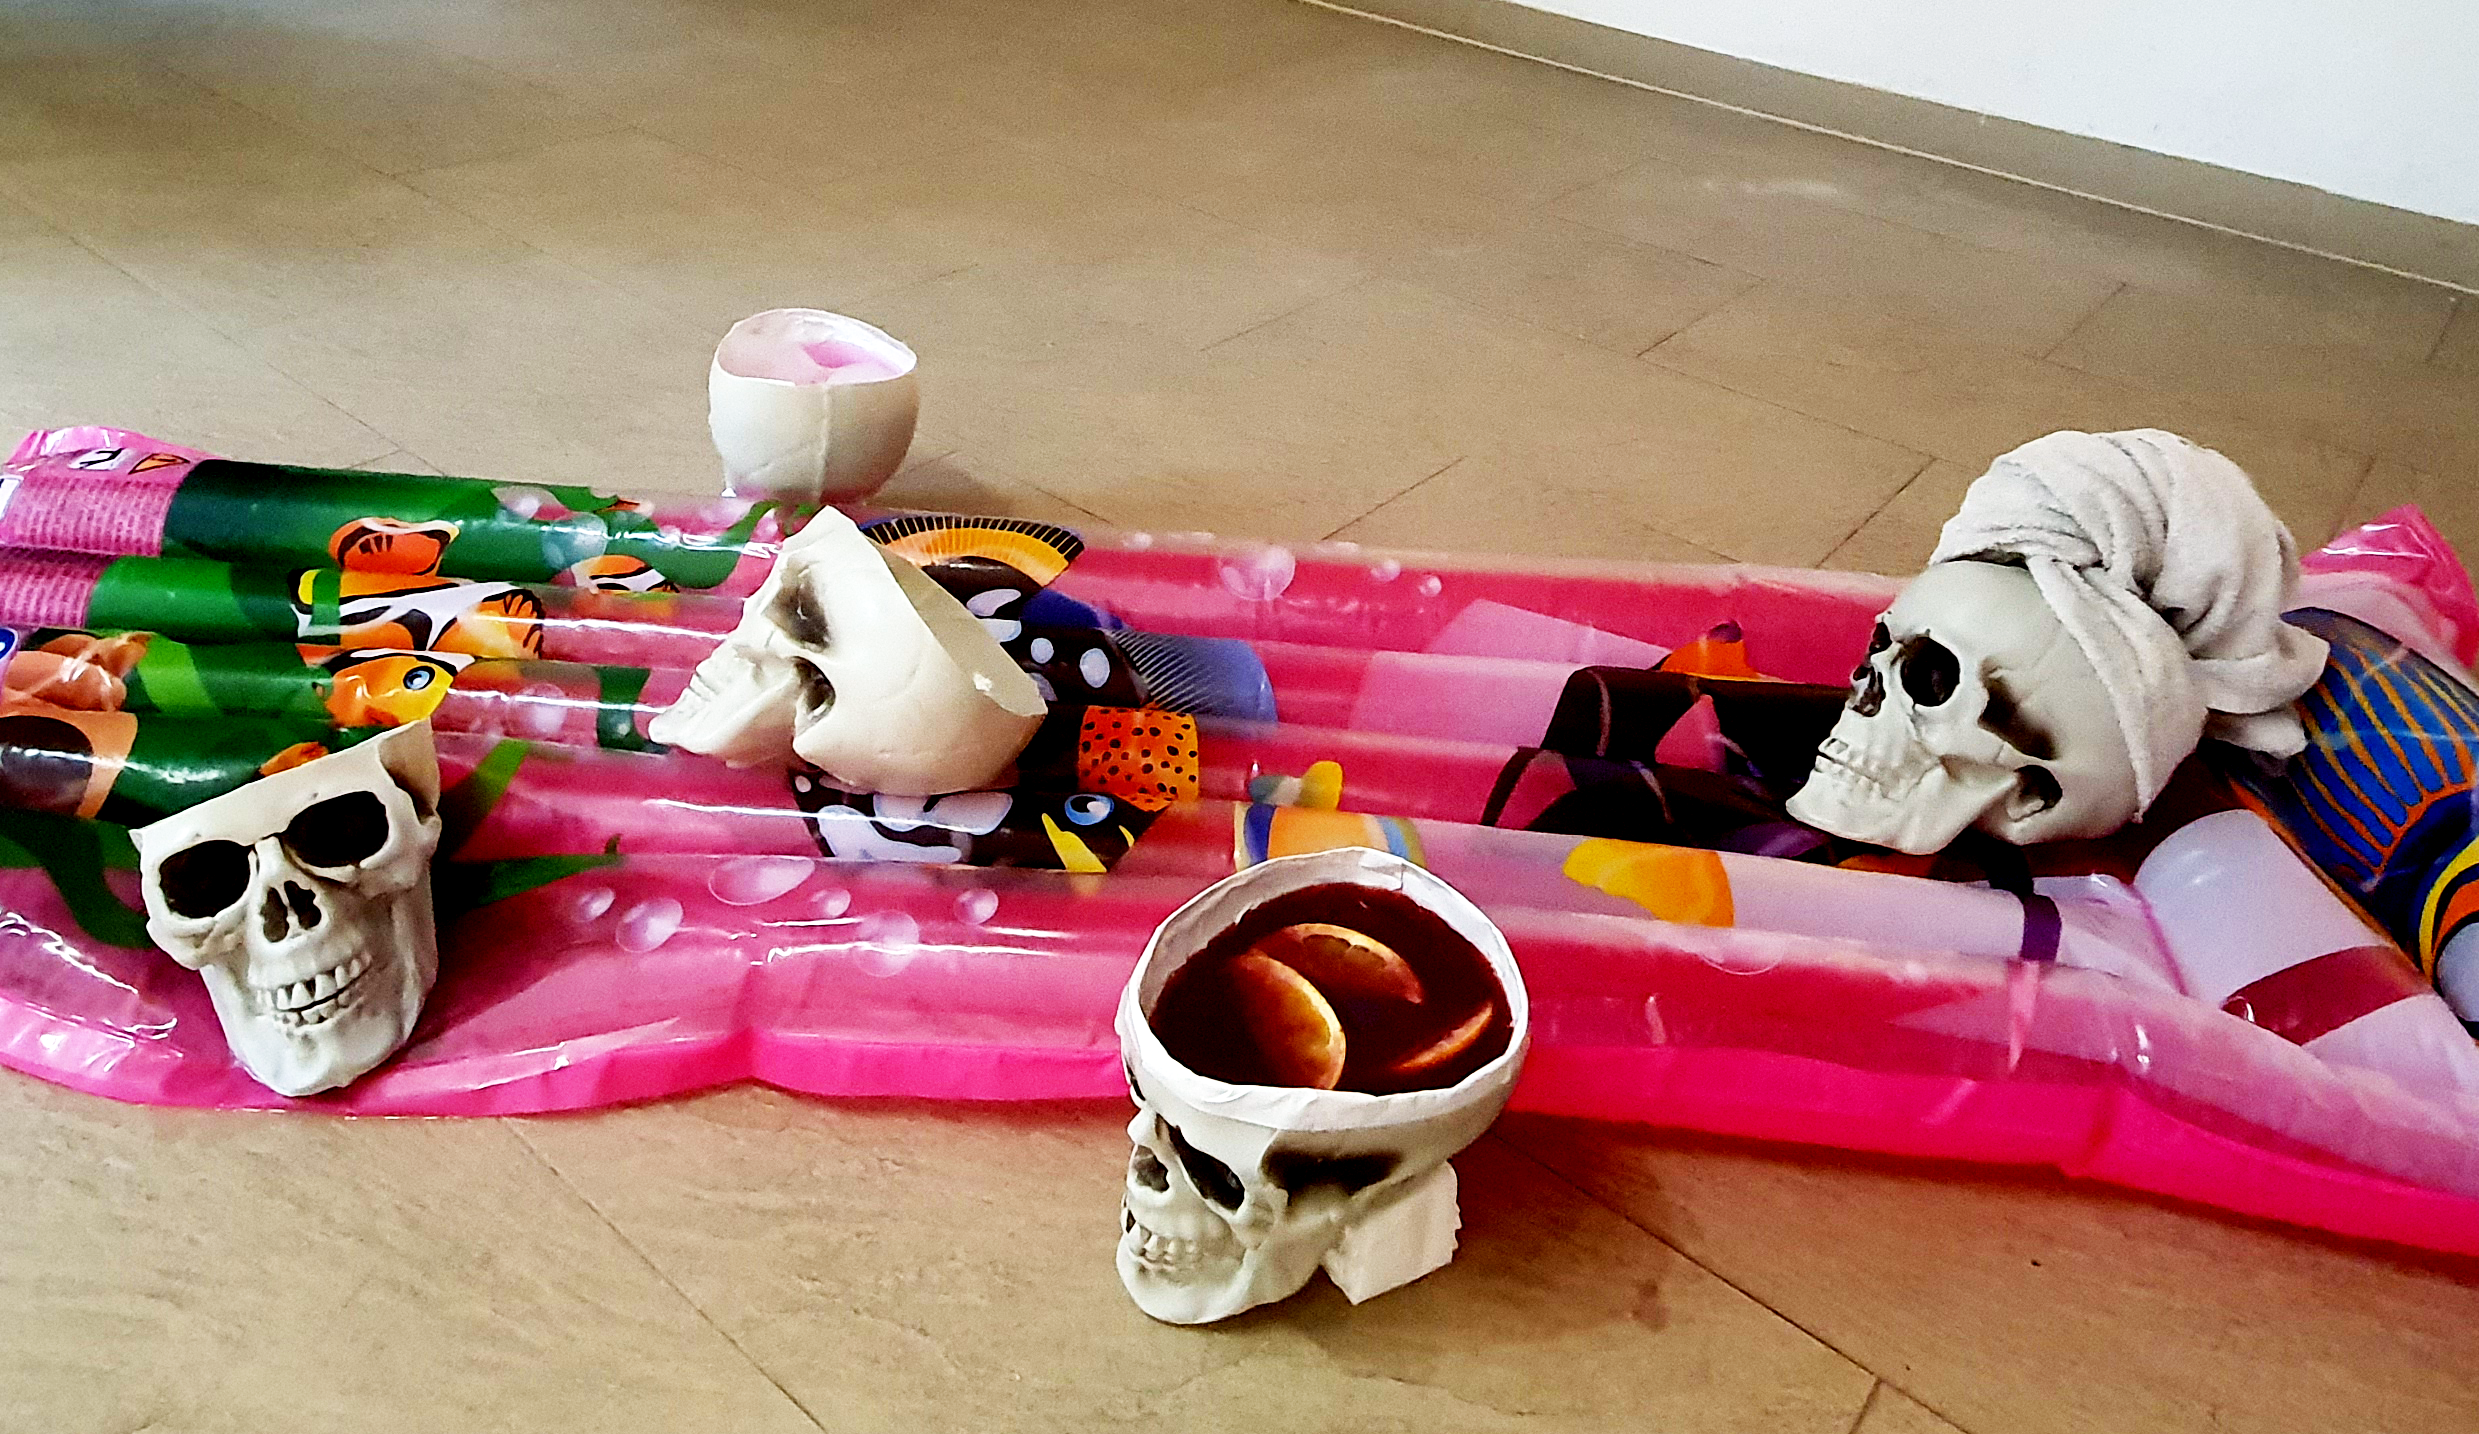 Summertime and the Living is Easy, 2019. Plastic skulls filled with sangria, sand, shampoo, a towel and nothing, relaxing on an inflatable pool float. Size: 180cm x 90cm.